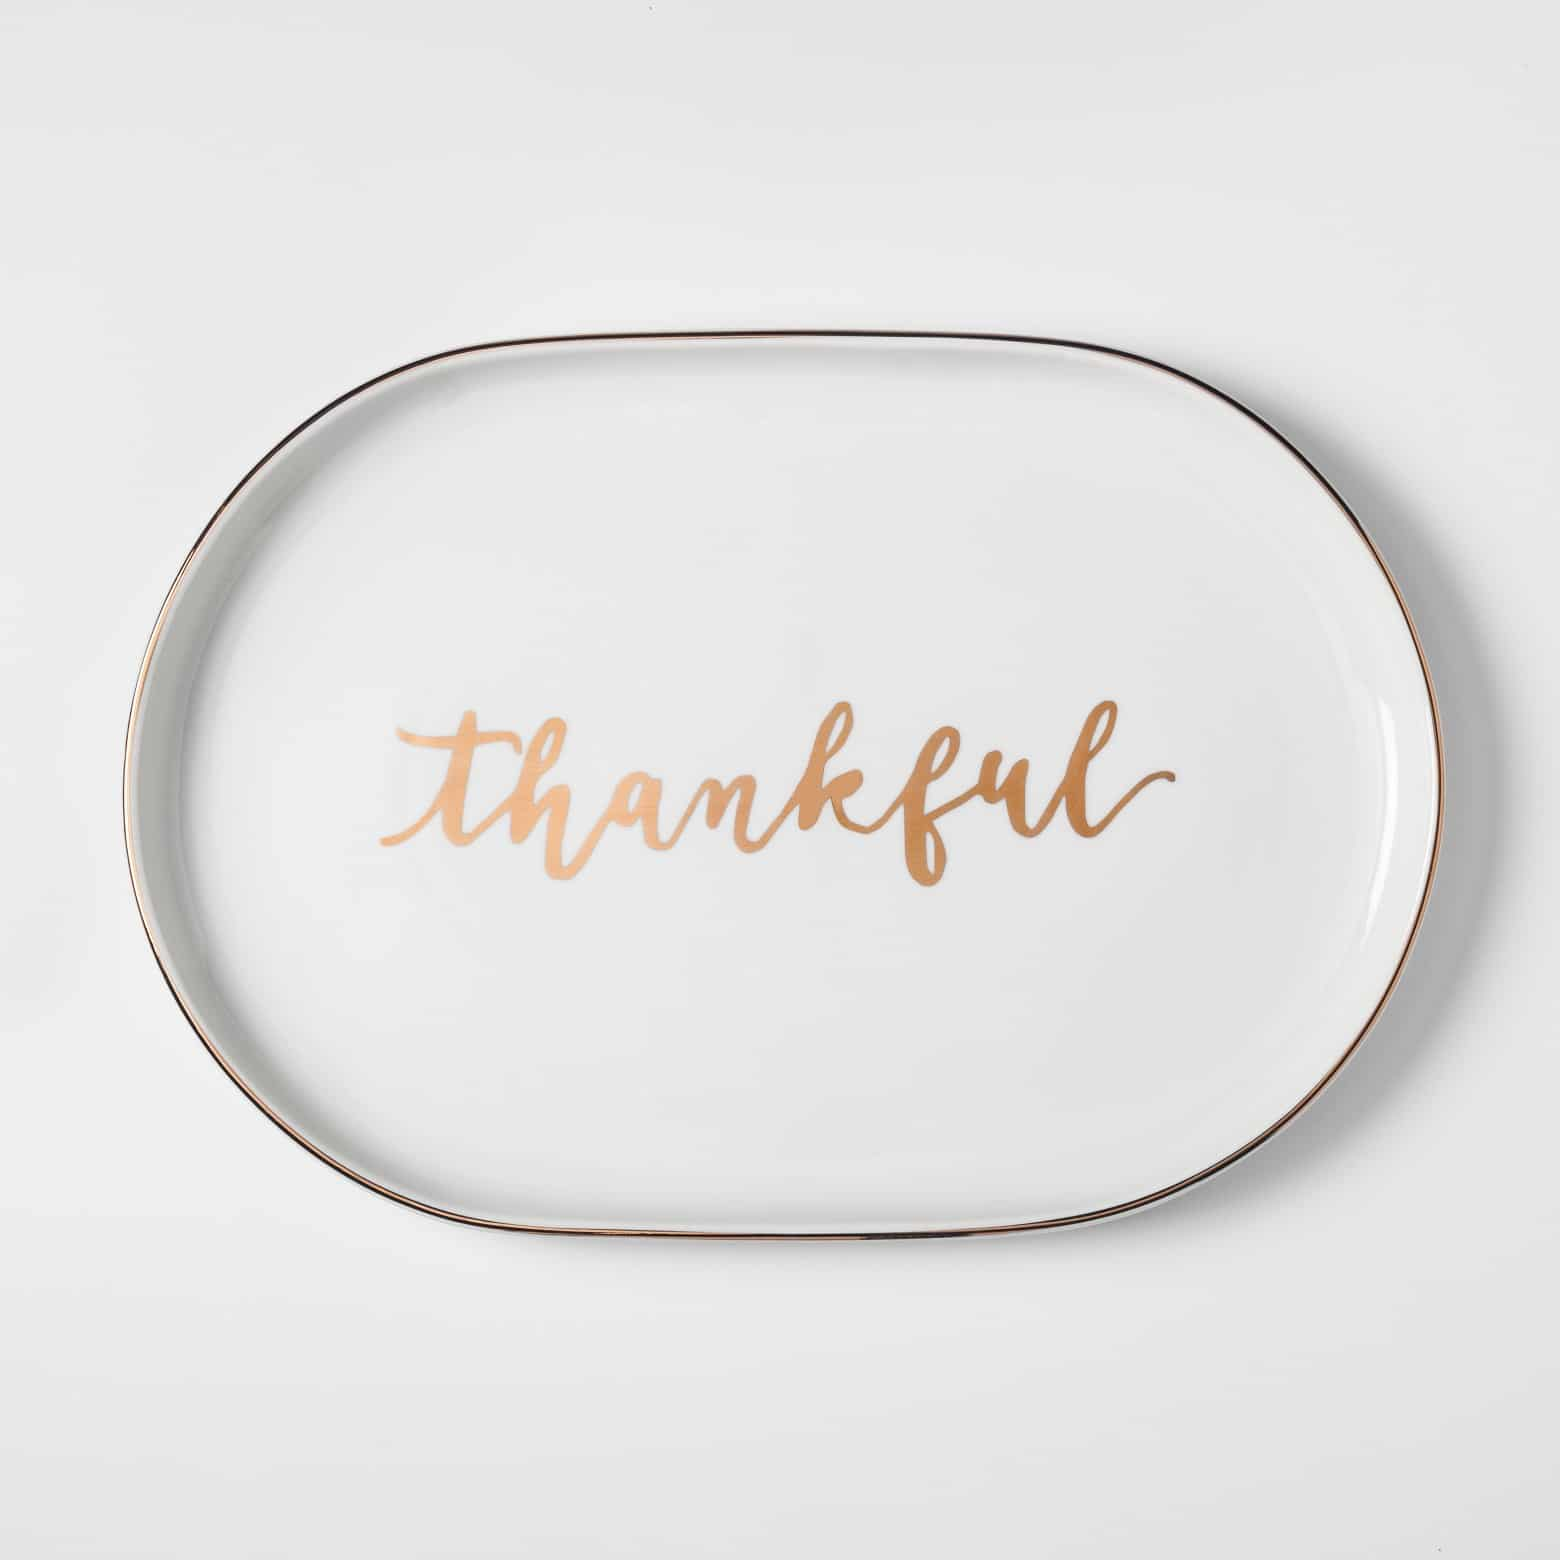 Thankful platter, perfect Thanksgiving addition!